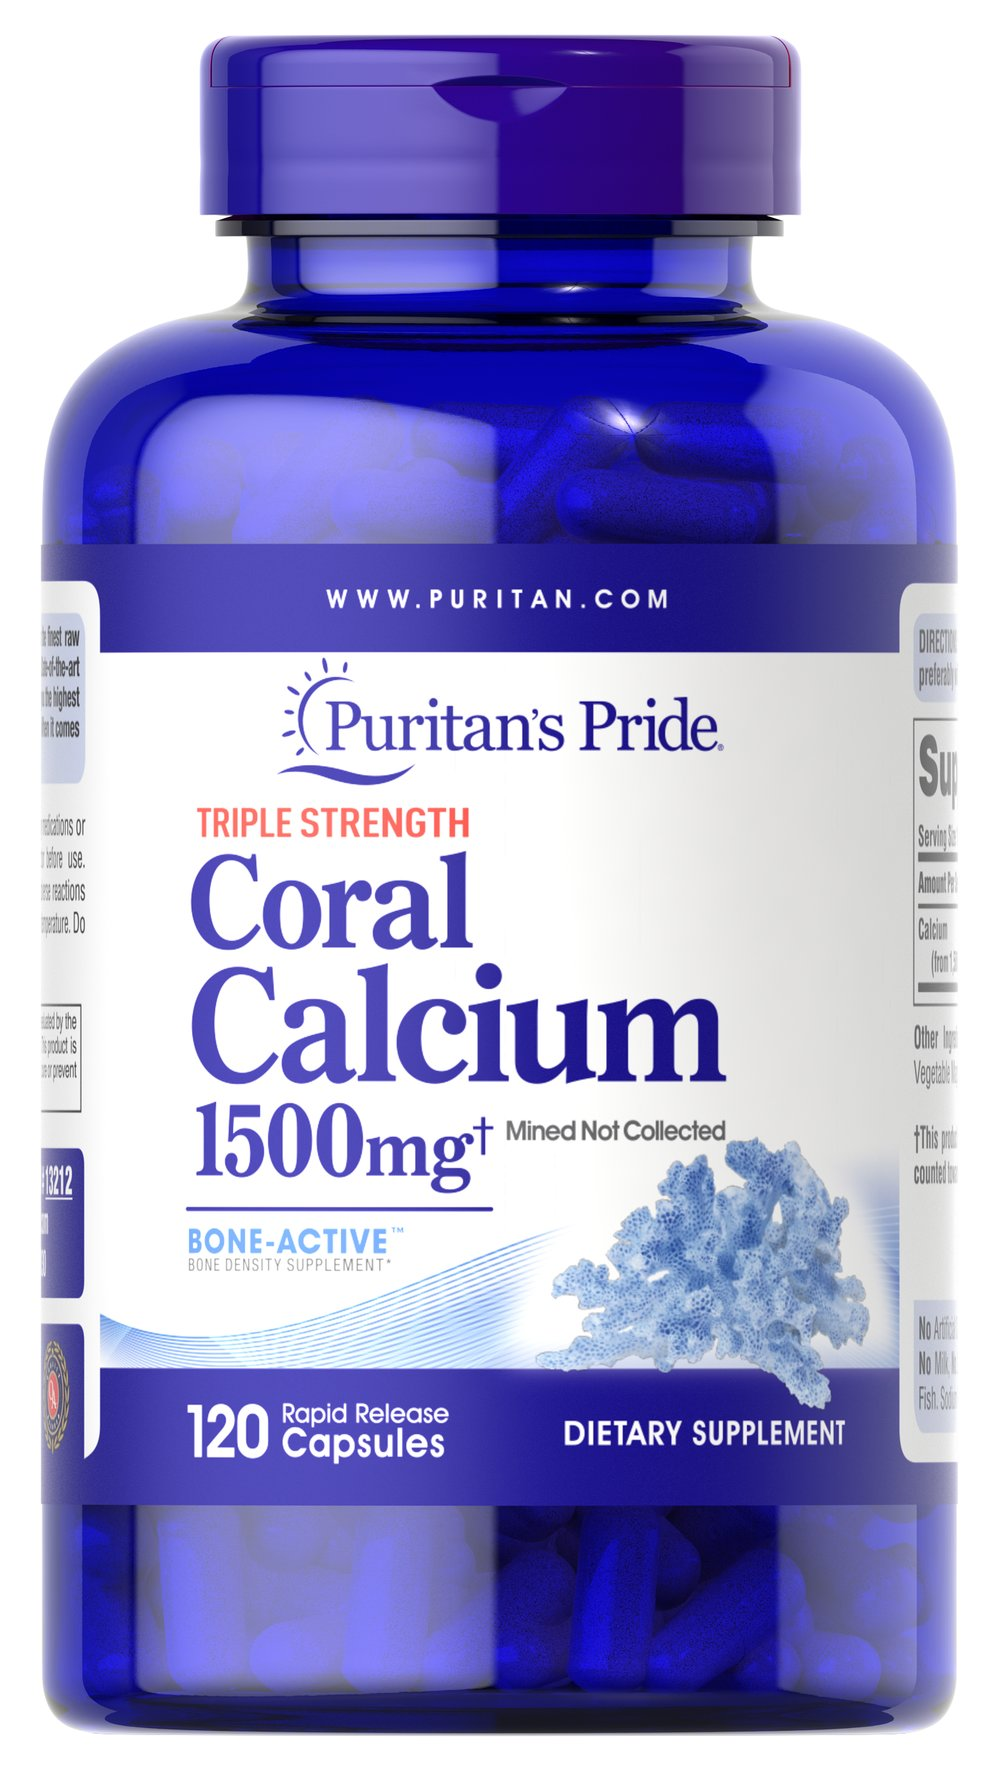 Triple Strength Coral Calcium 1500 mg  120 Capsules 1500 mg $44.99